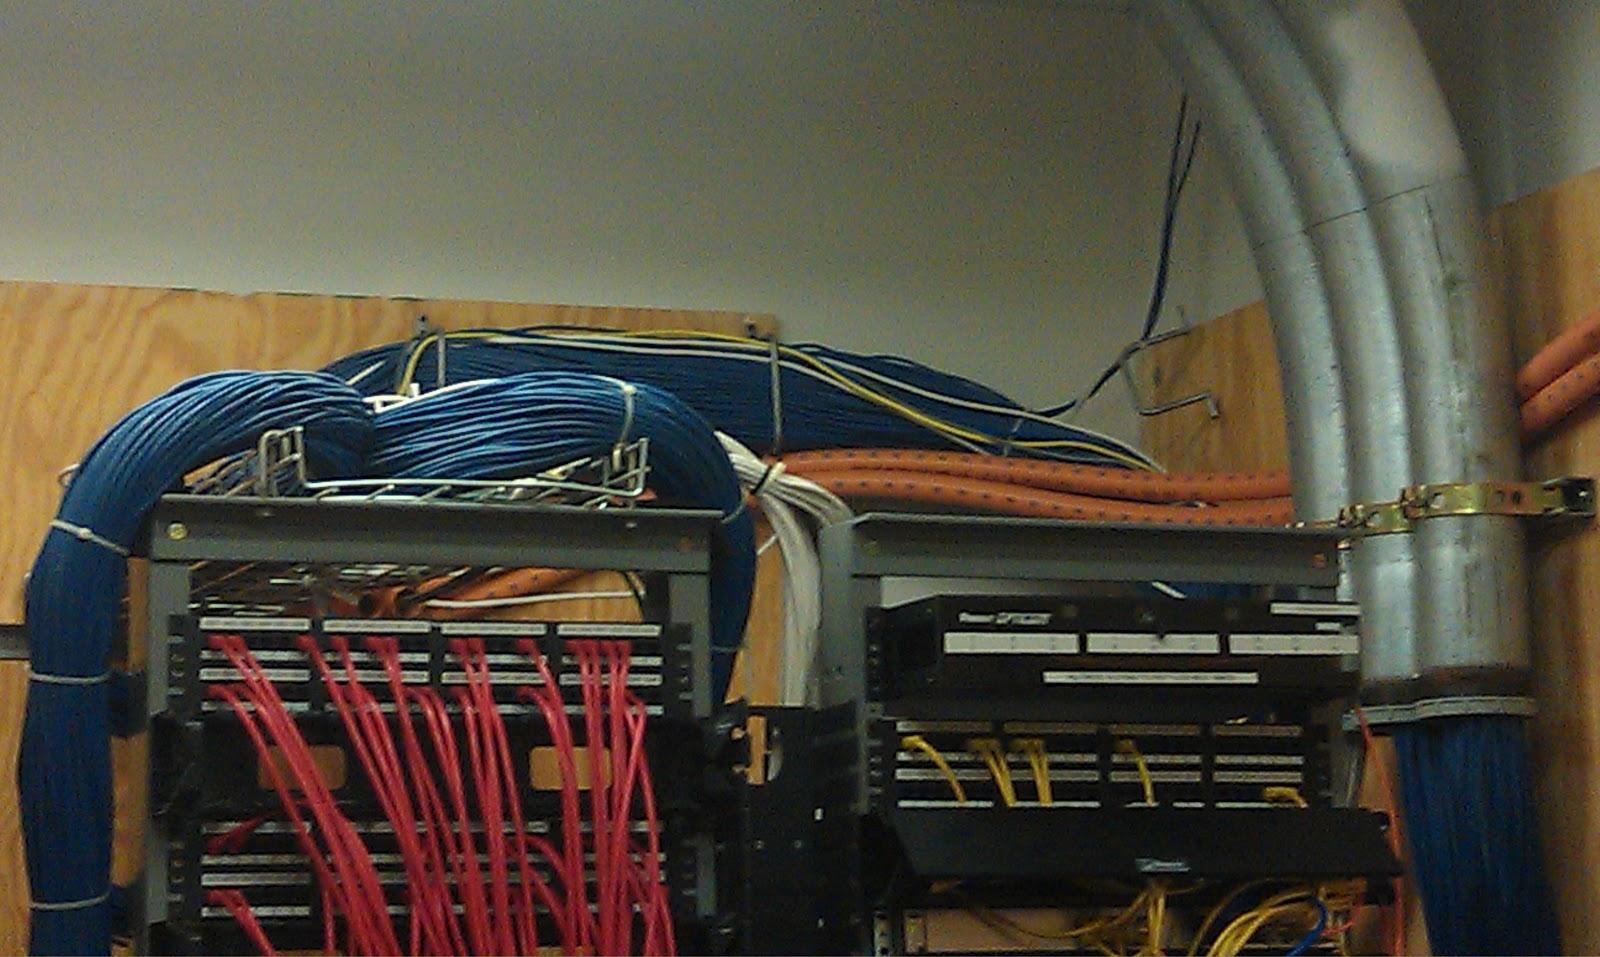 The news of the network: Tour of the campus network Wiring Closets on